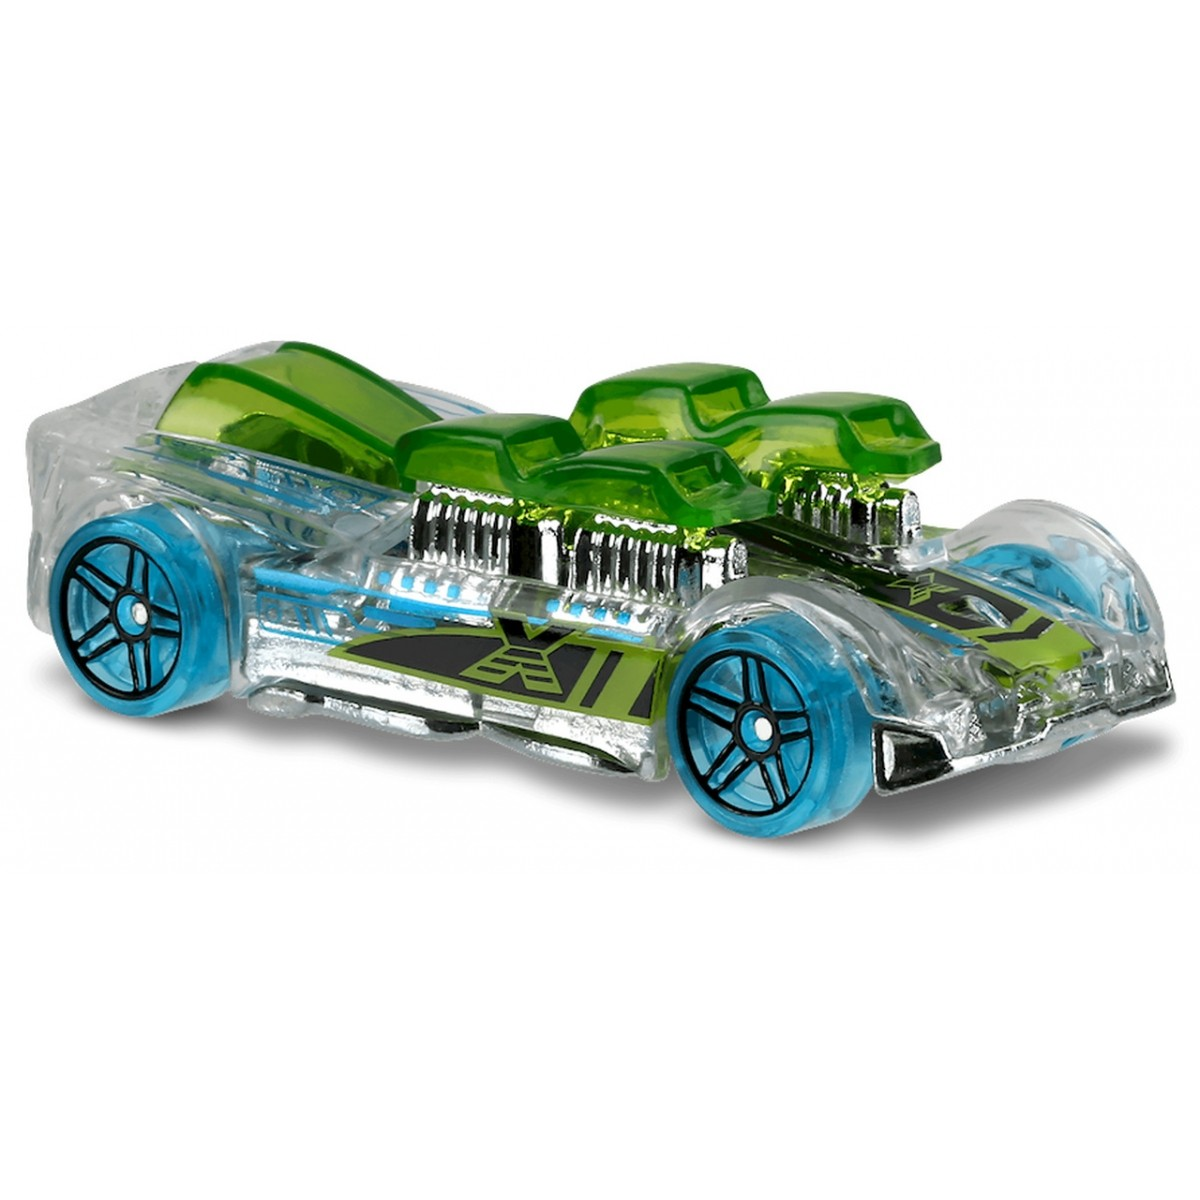 Carrinho Hot Wheels: What-4-2 Transparente